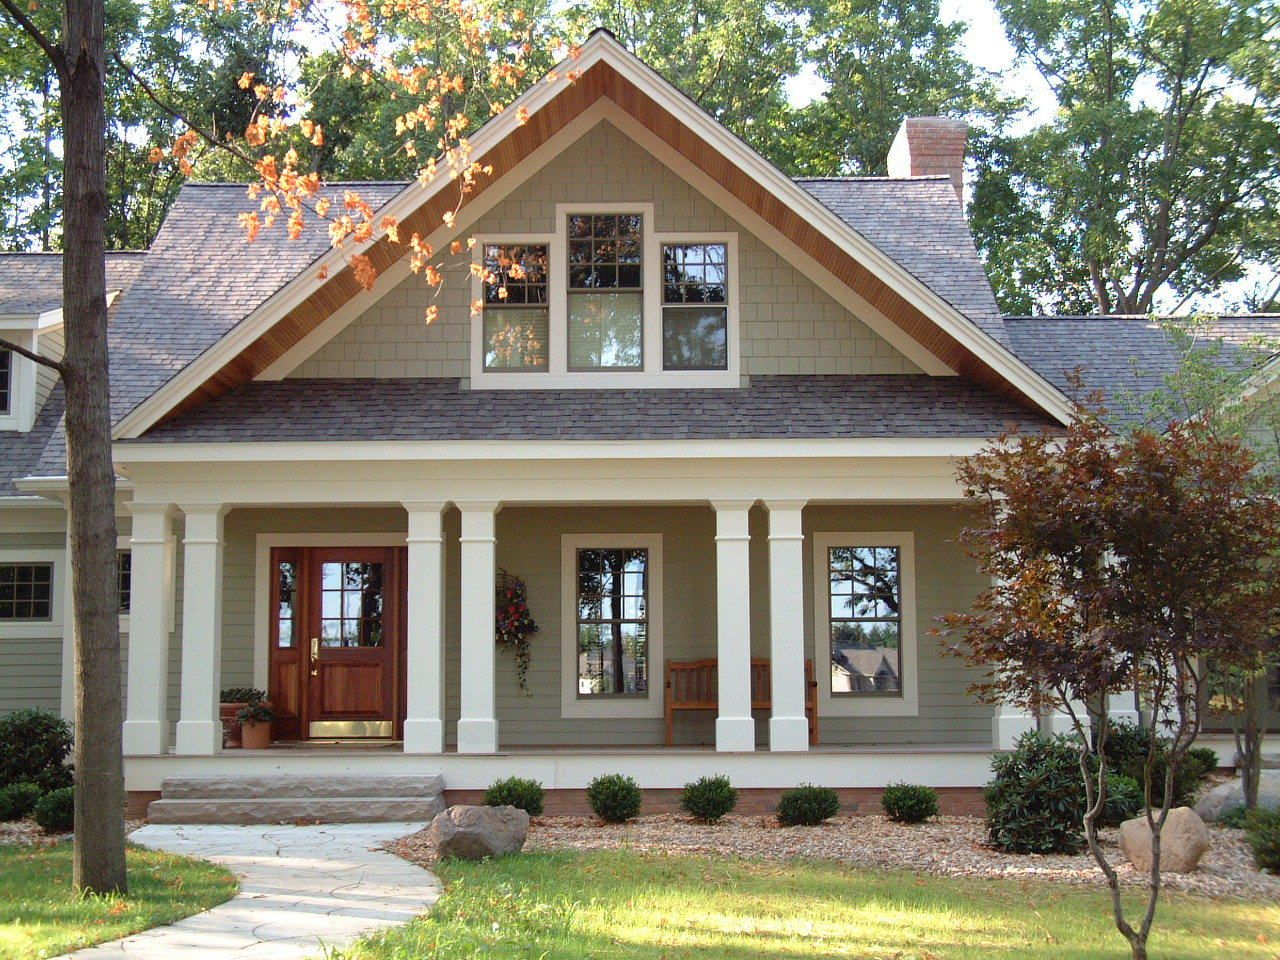 1 A SHINGLE-CRAFTSMAN STYLE RESIDENCE #craftsmanstylehomes